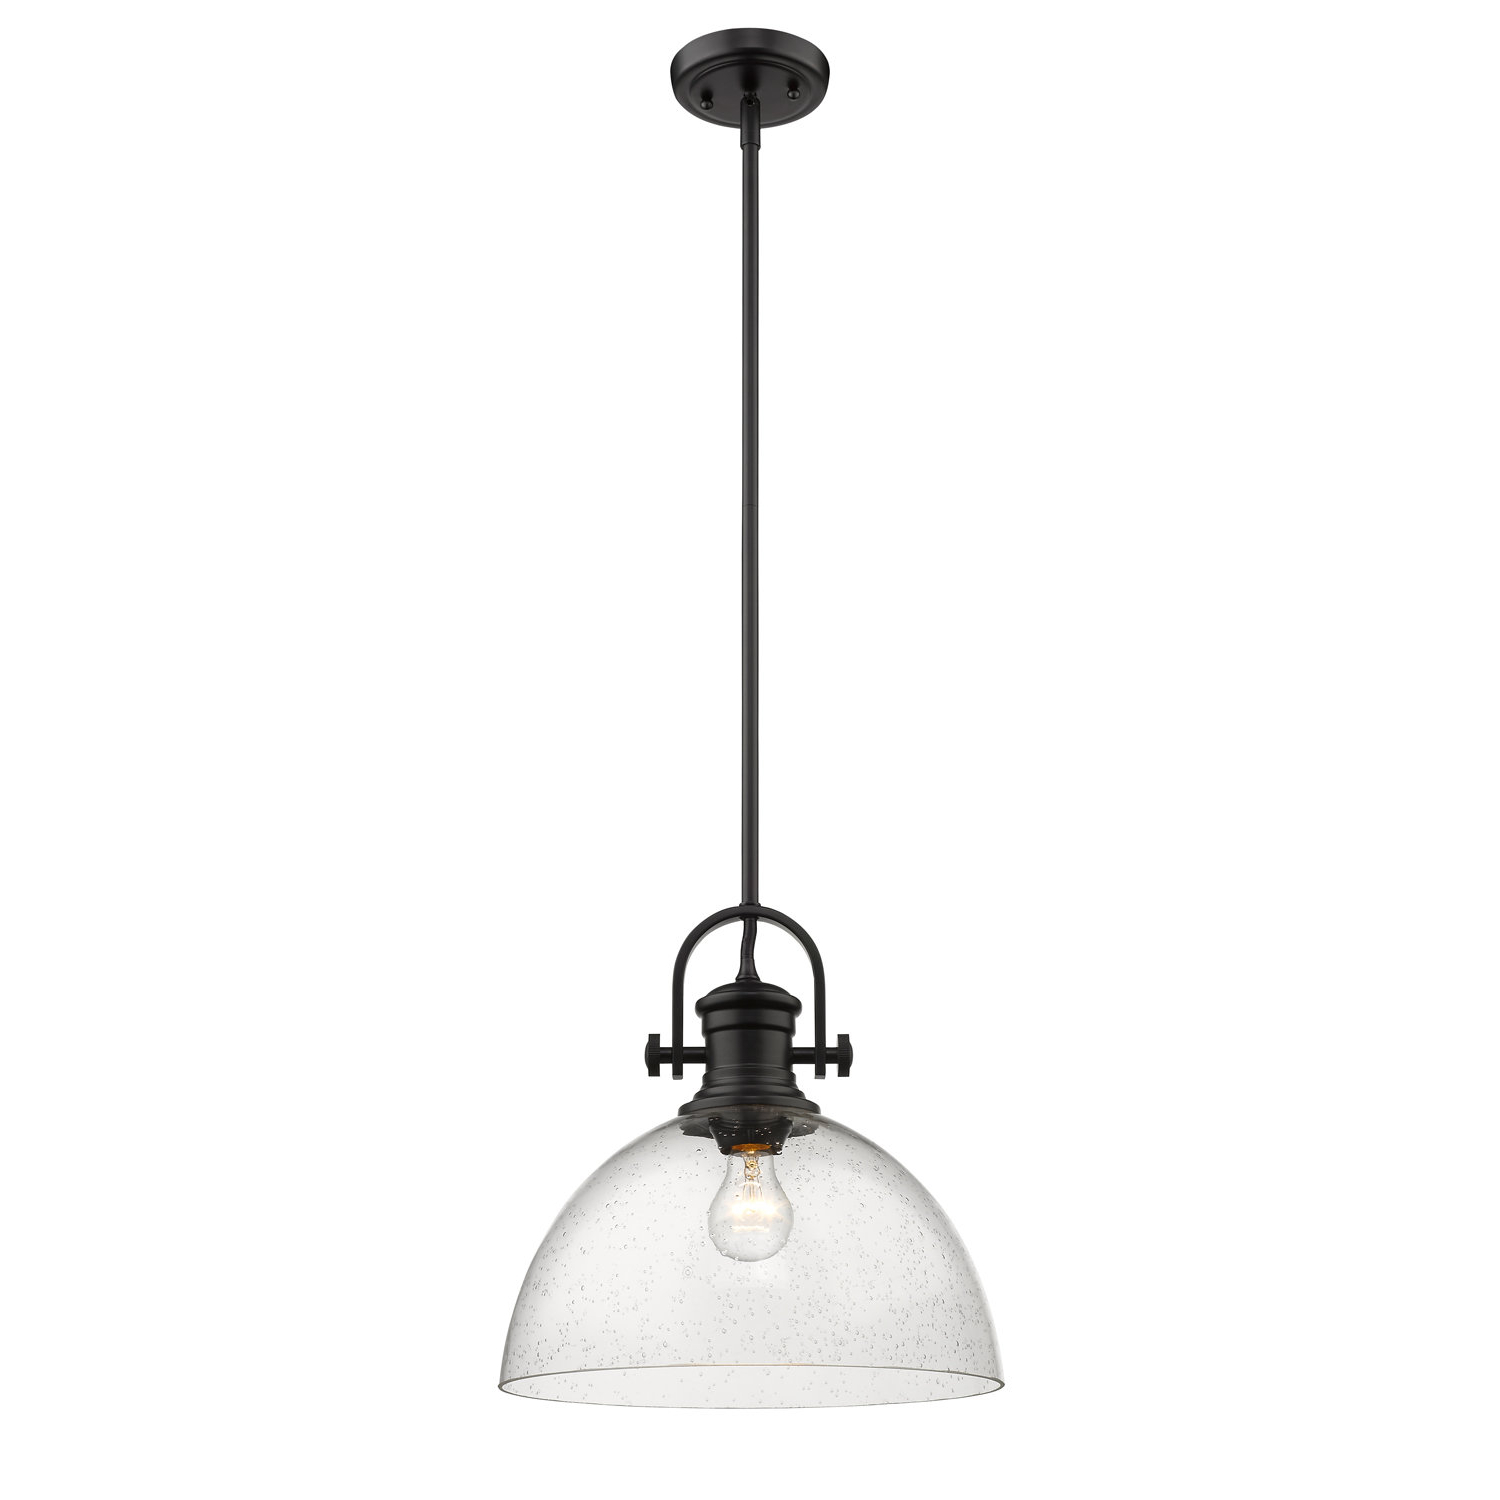 Granville 2 Light Single Dome Pendants Throughout Most Popular Vedder 1 Light Dome Pendant (View 11 of 25)